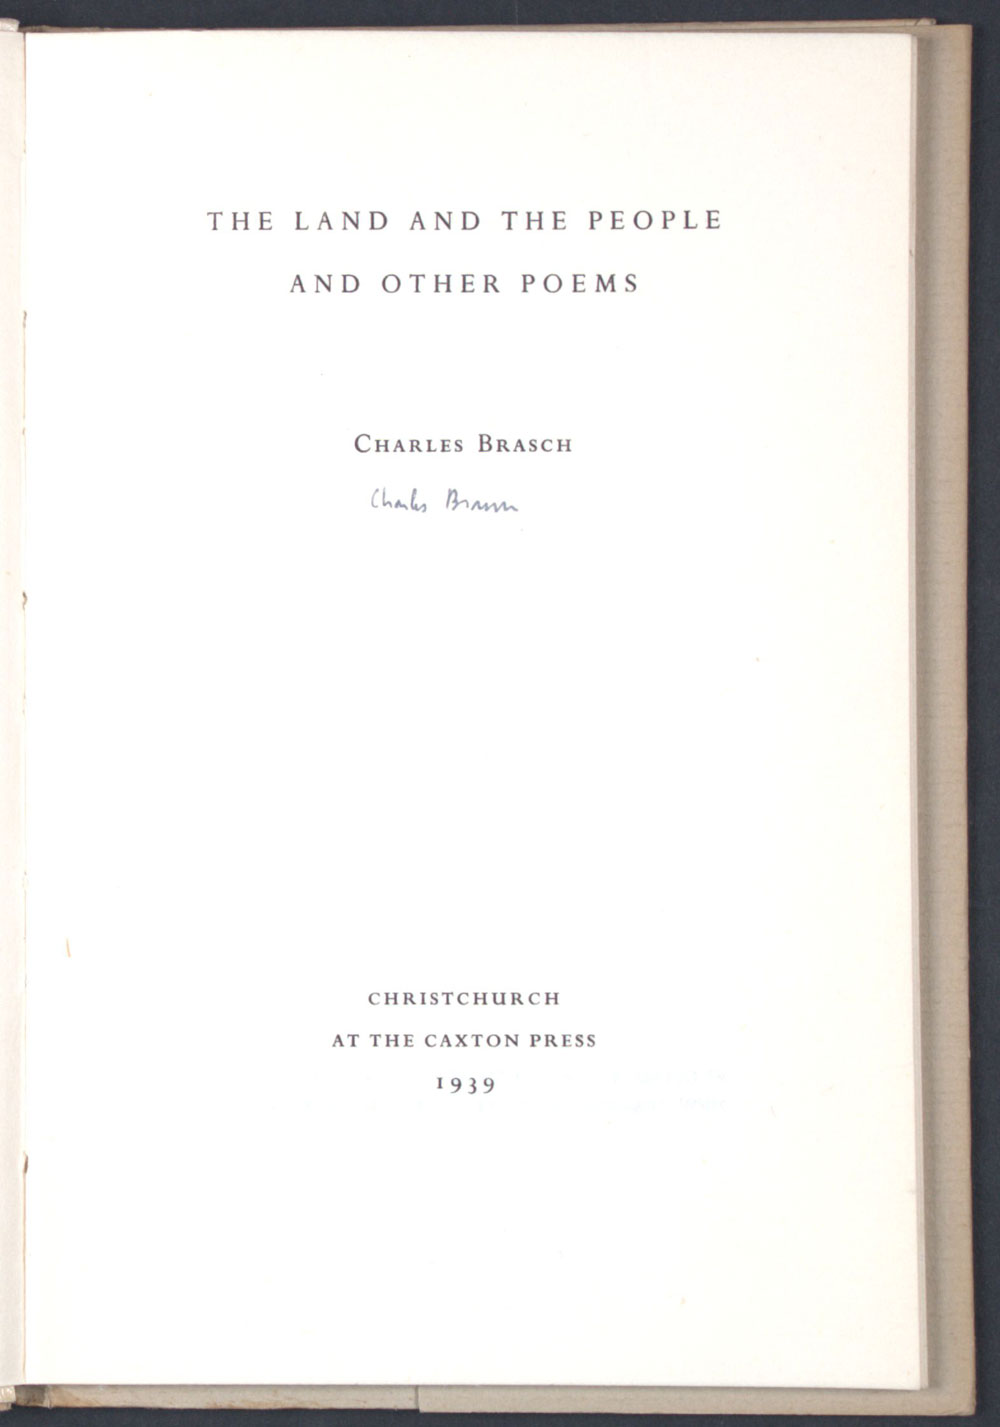 Charles Brasch. <em>The land and the people and other poems</em>. Christchurch: Caxton Press, 1939.